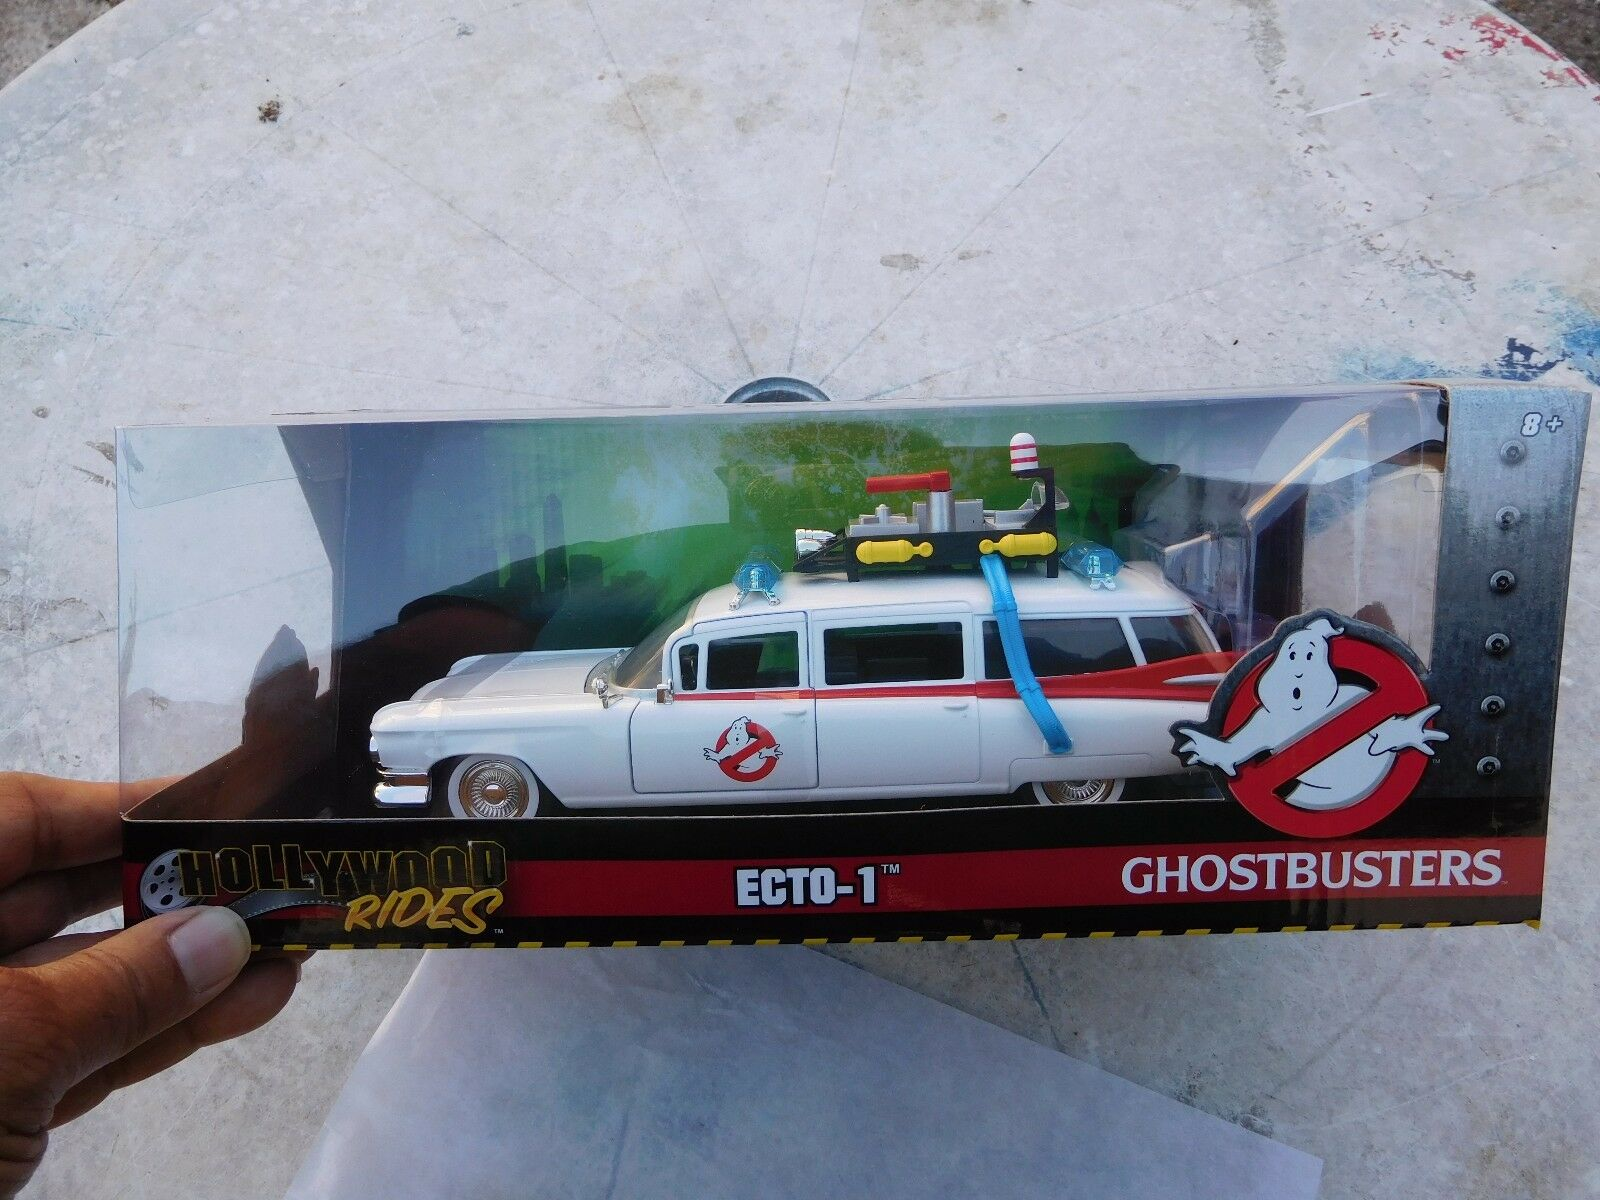 Ghostbusters CADILLAC ECTO 1 1959 Movie 1 24 JADA DIECAST 10in Model  NEW